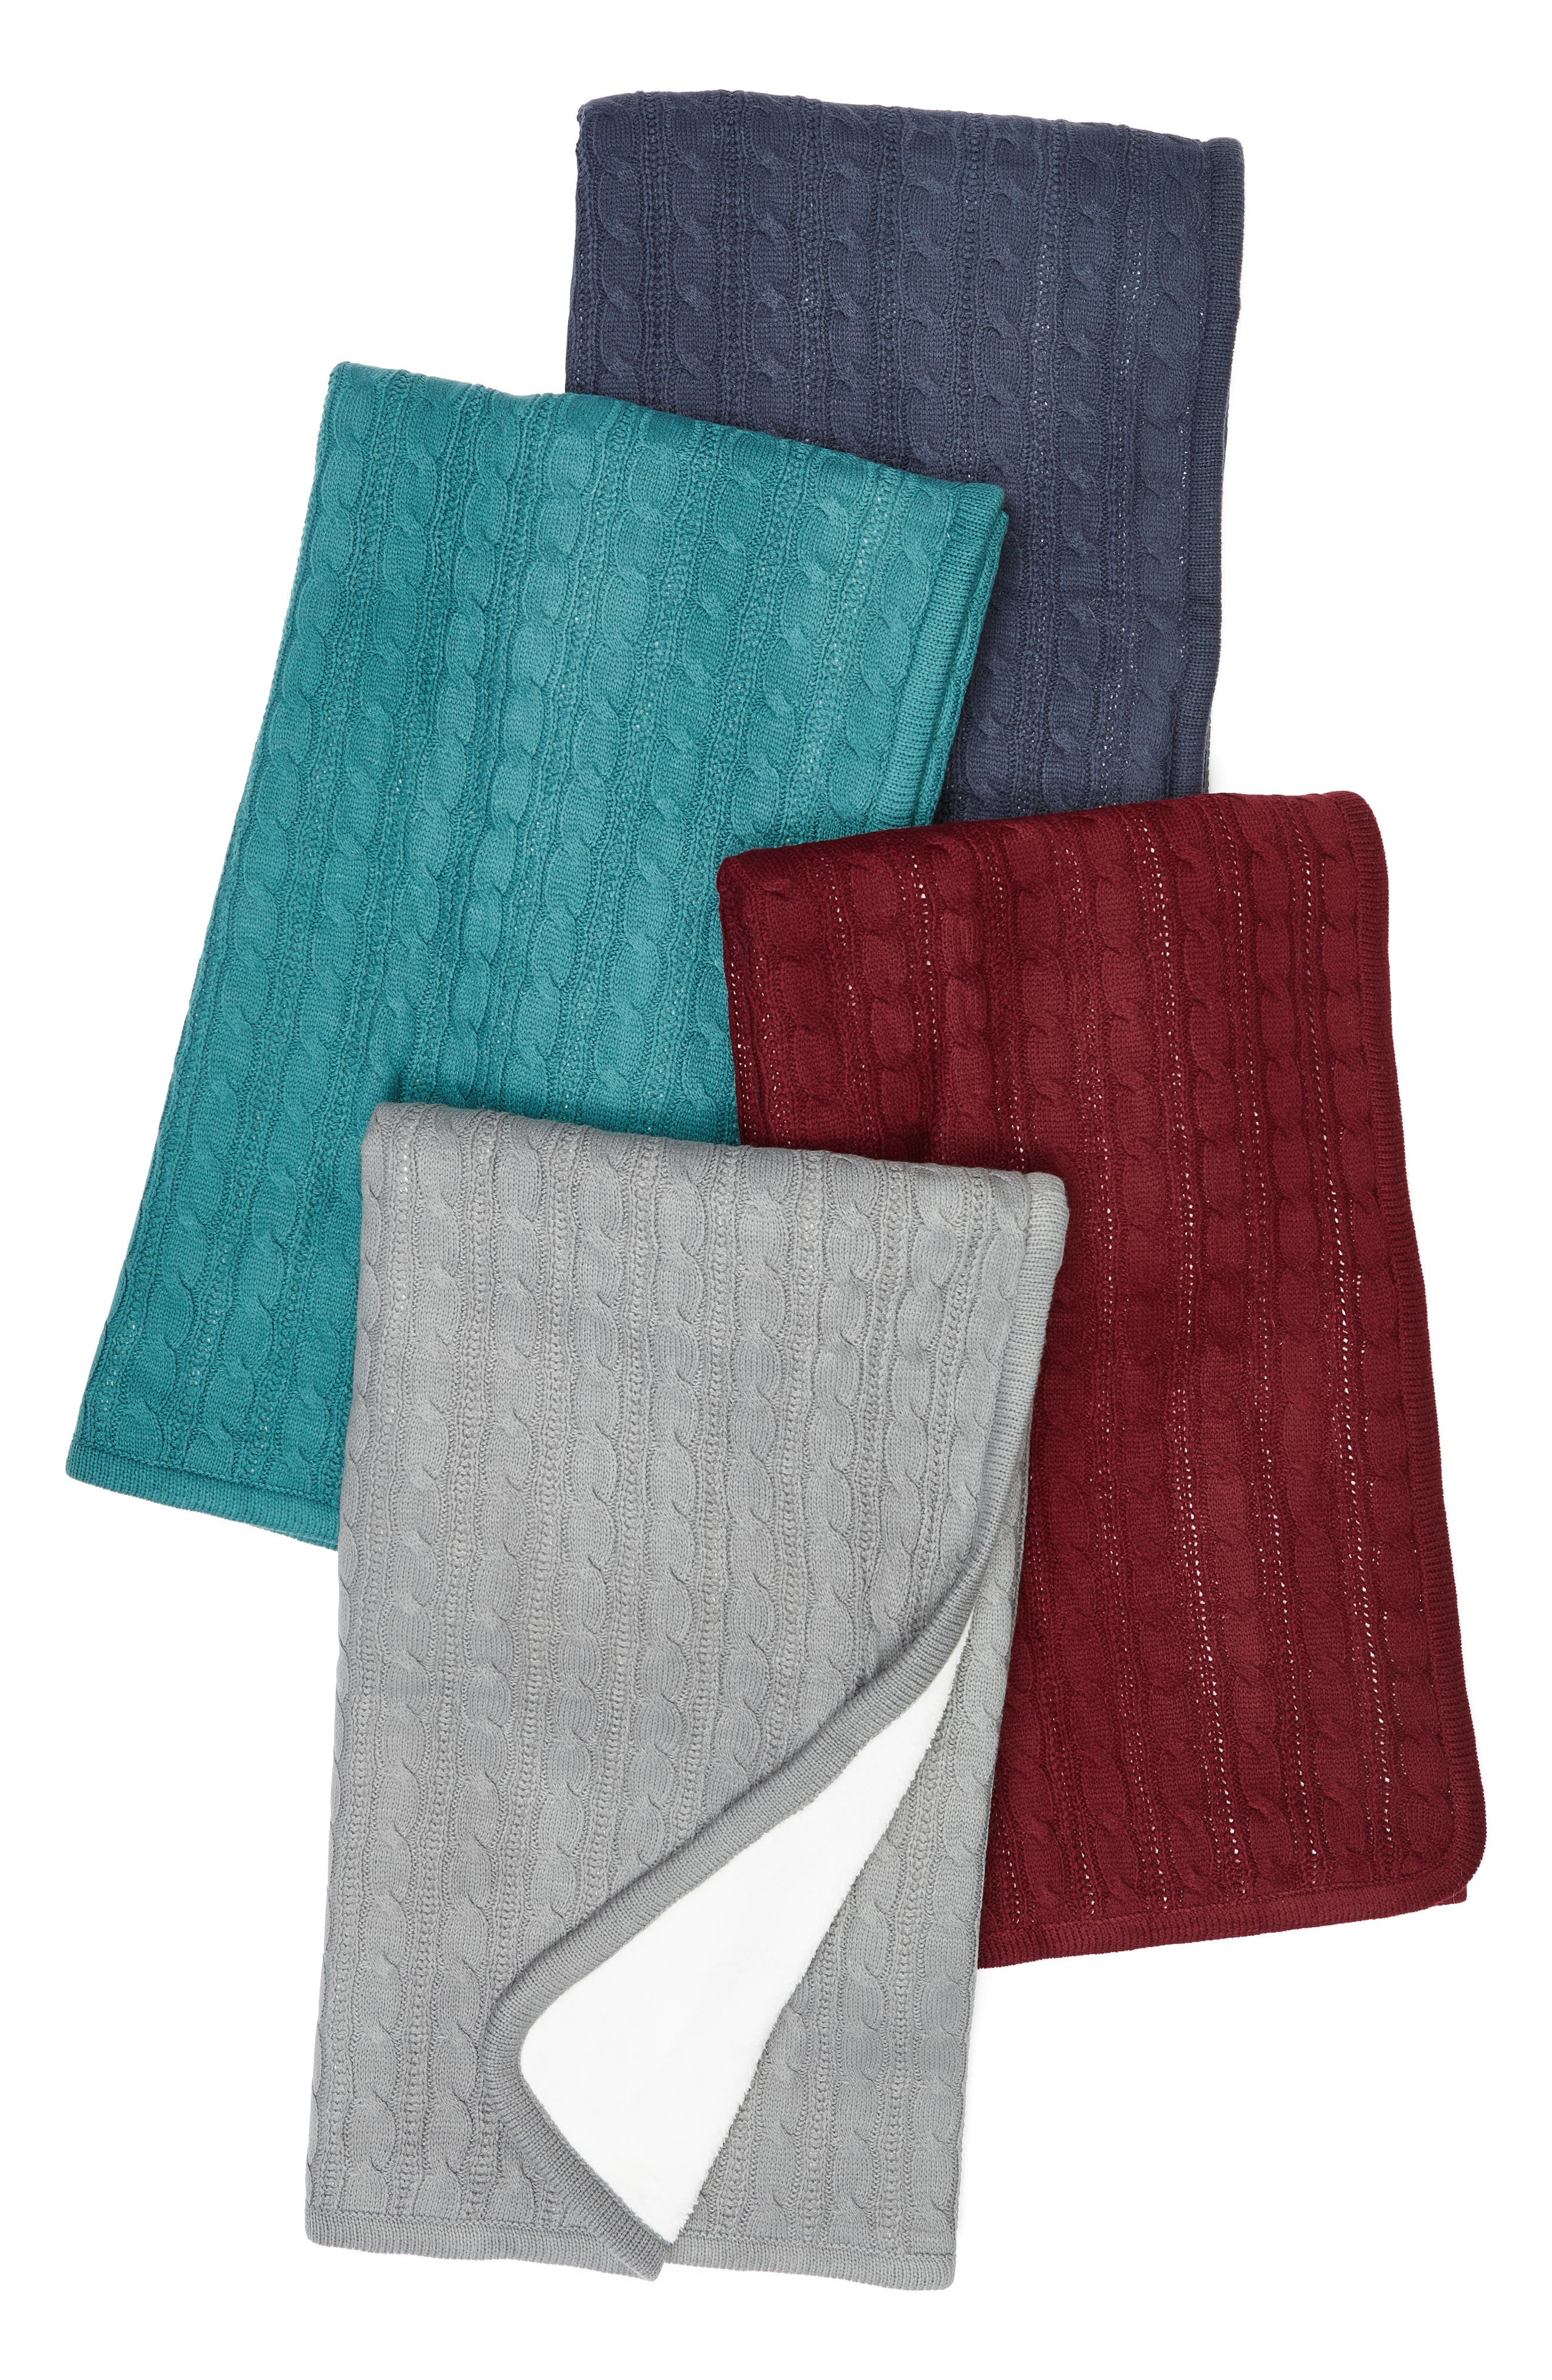 Cable Knit Throw Blanket,                             Alternate thumbnail 3, color,